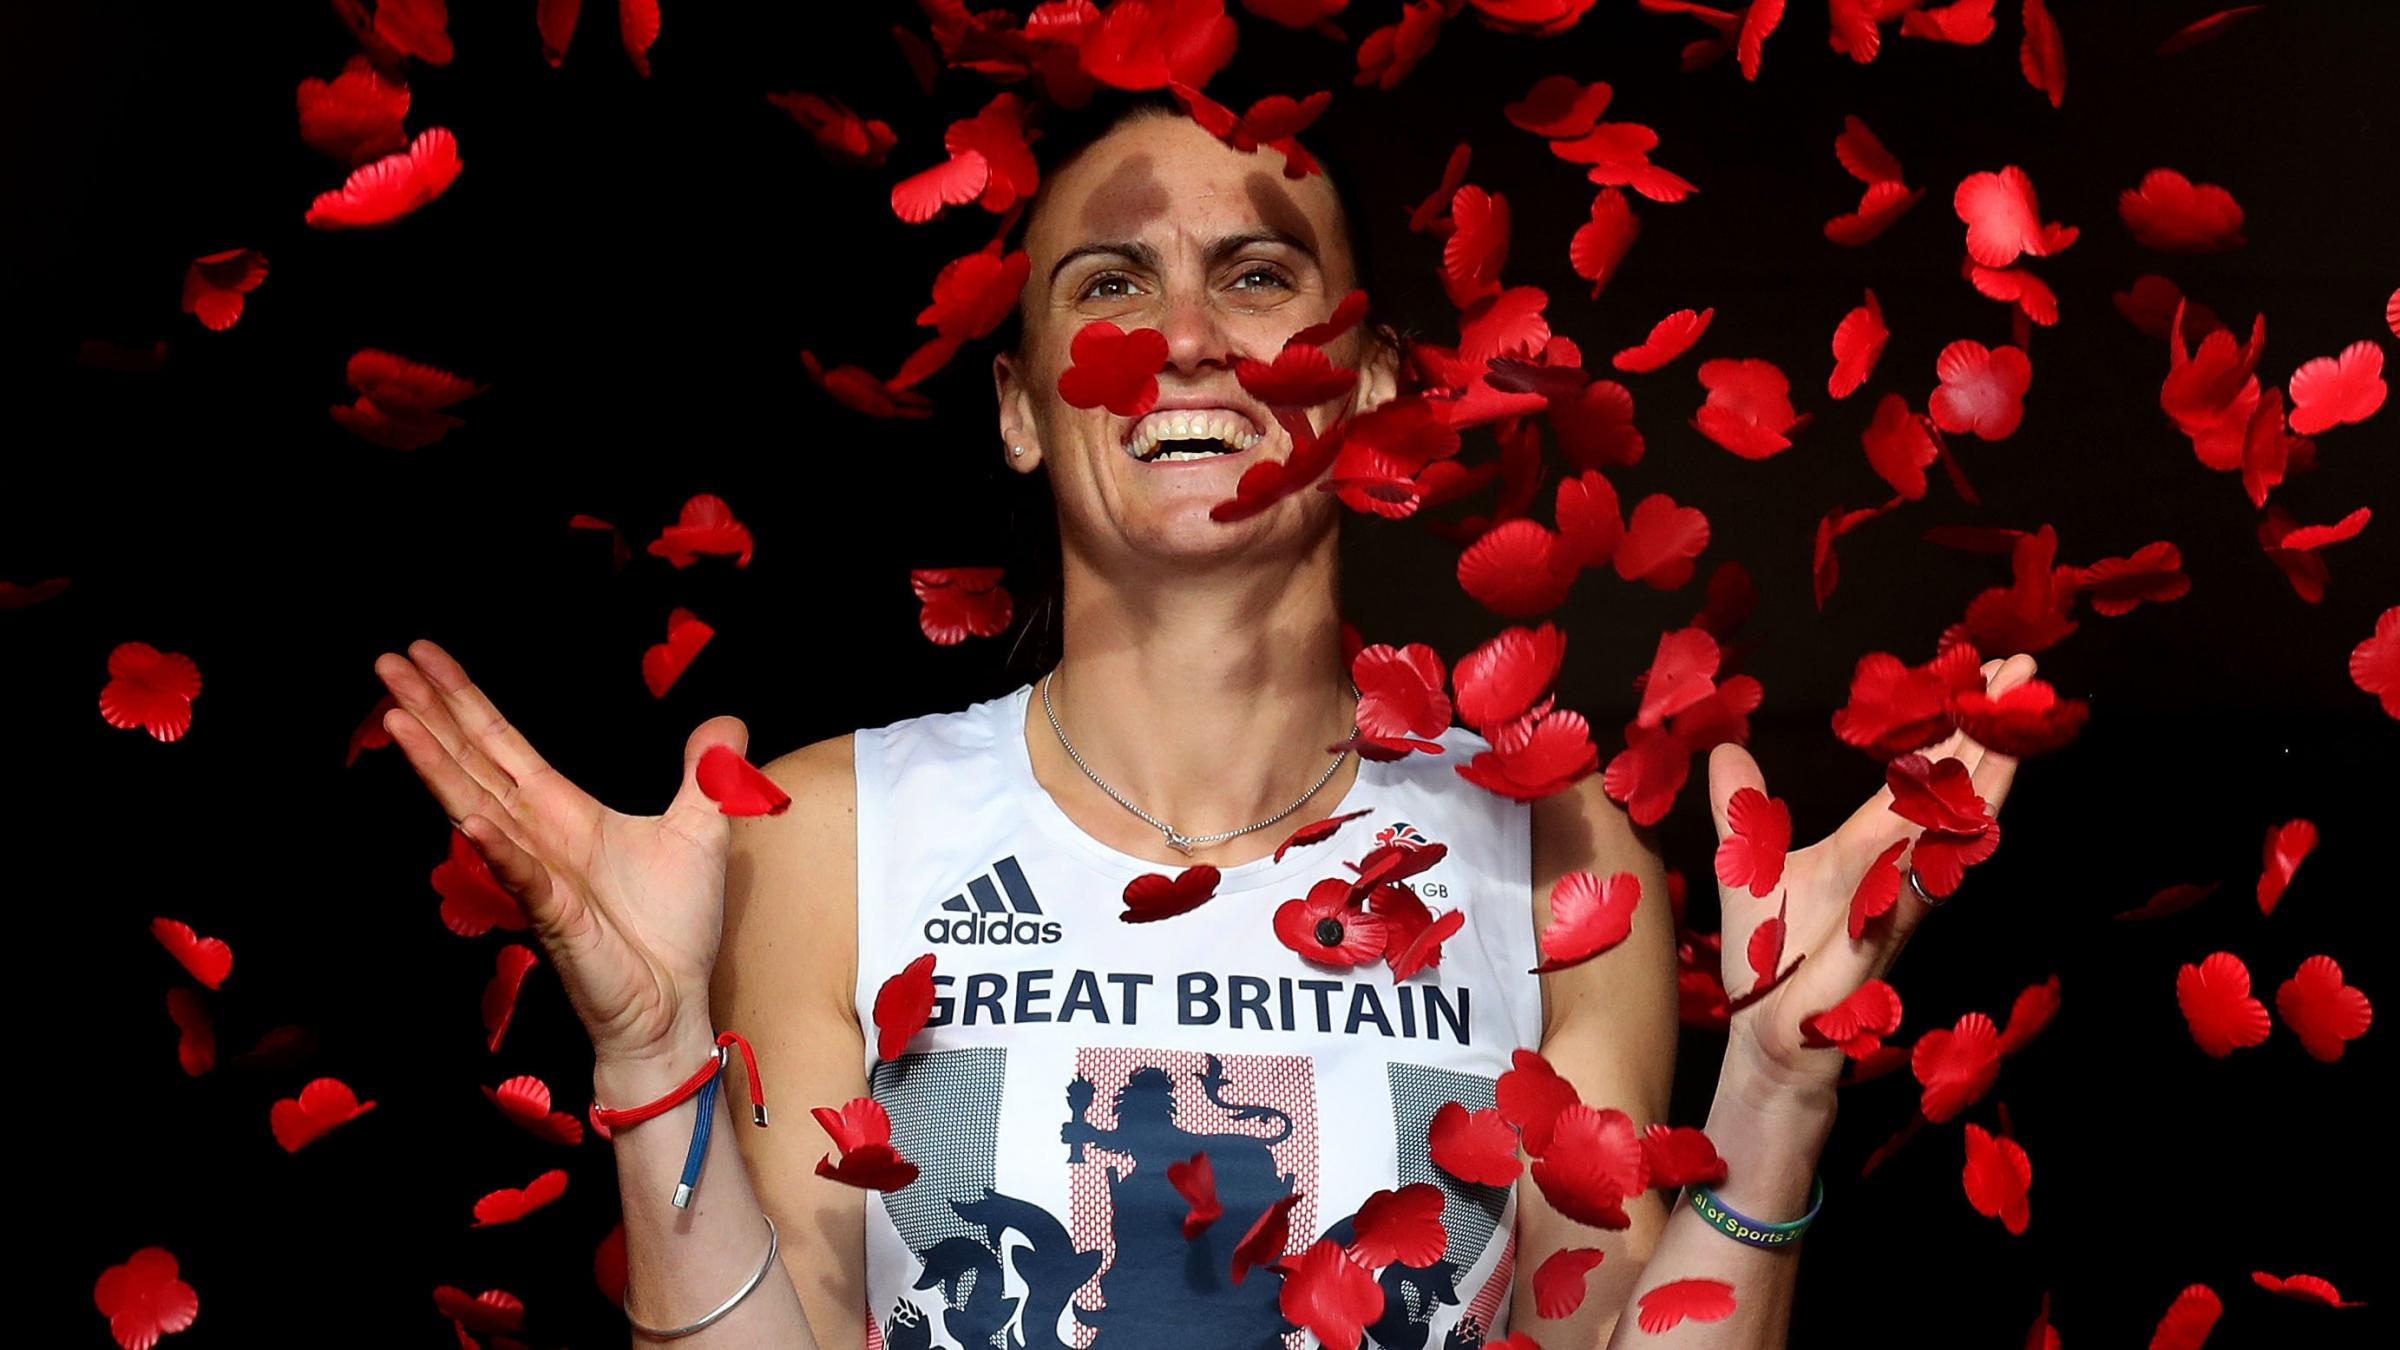 Double Olympic champion Heather Stanning awarded OBE